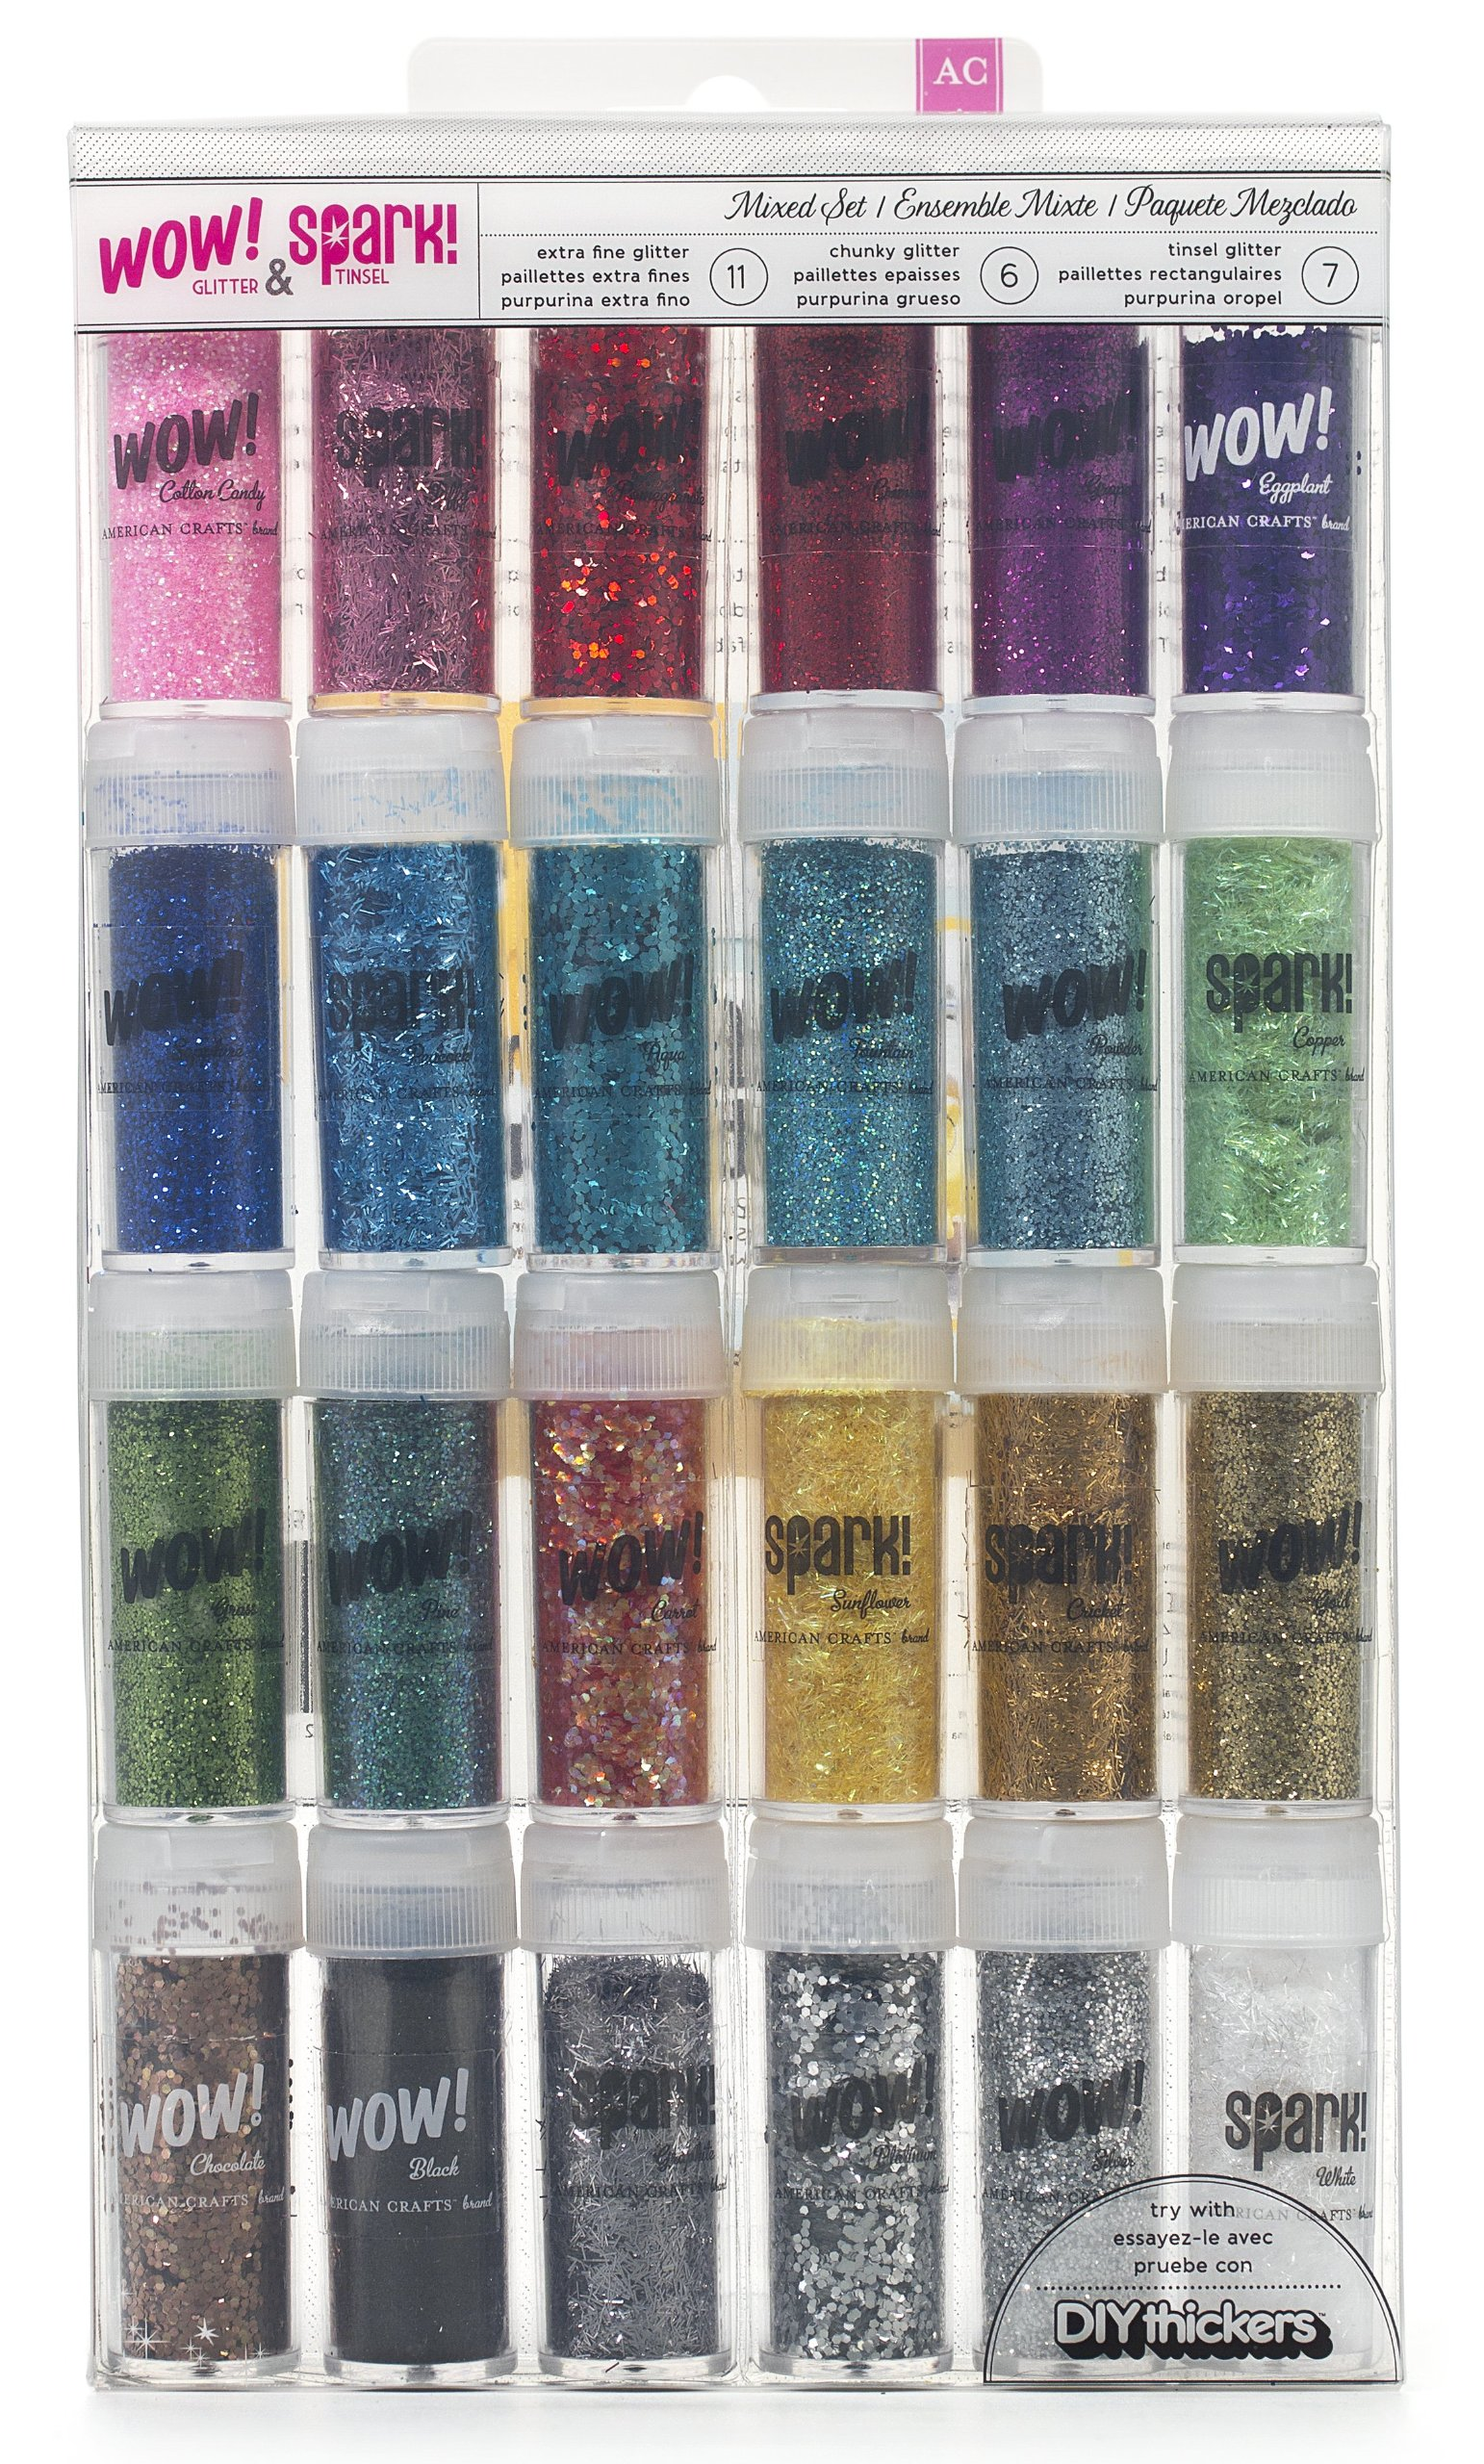 null - Wow! & Spark! Mixed Glitter Pack by American Crafts | 24-pack | Includes 11 bottles extra fine glitter, 6 bottles chunky glitter and 7 bottles tinsel glitter in various colors